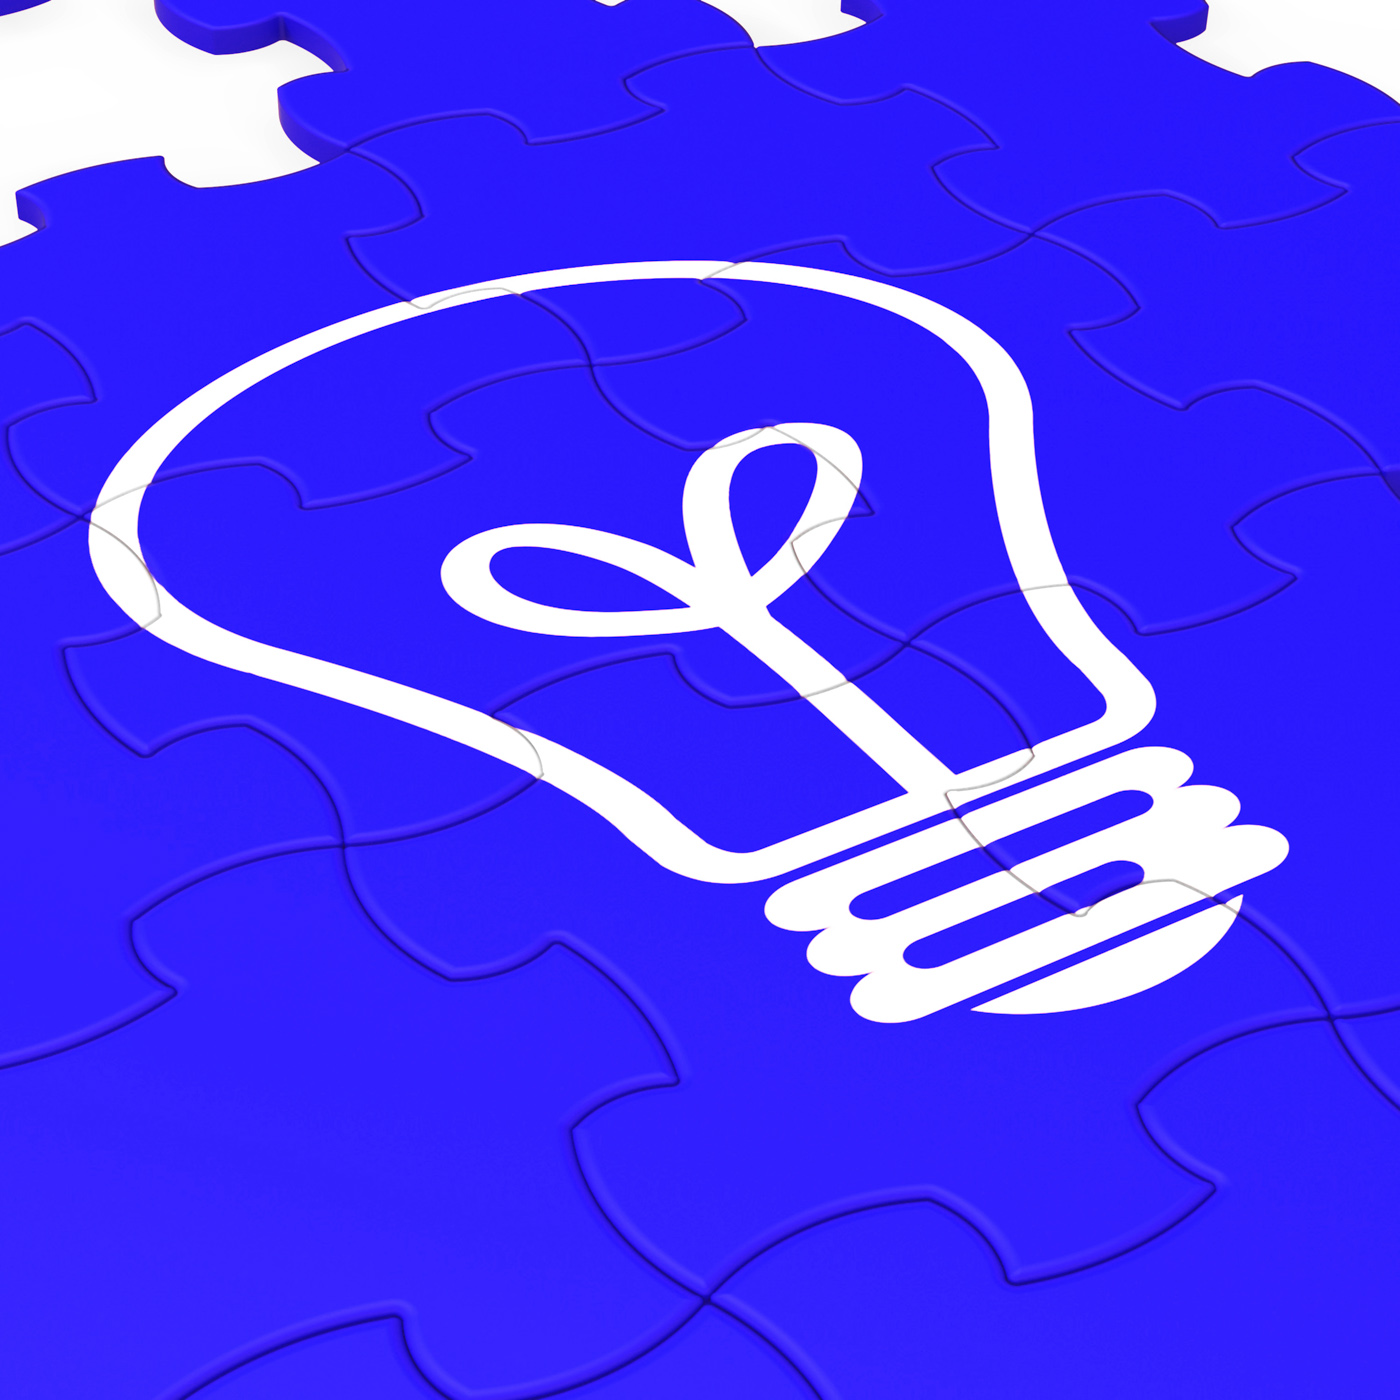 Bulb Puzzle Shows Intelligence And Inventions, Bright, Illuminate, Light, Lamp, HQ Photo